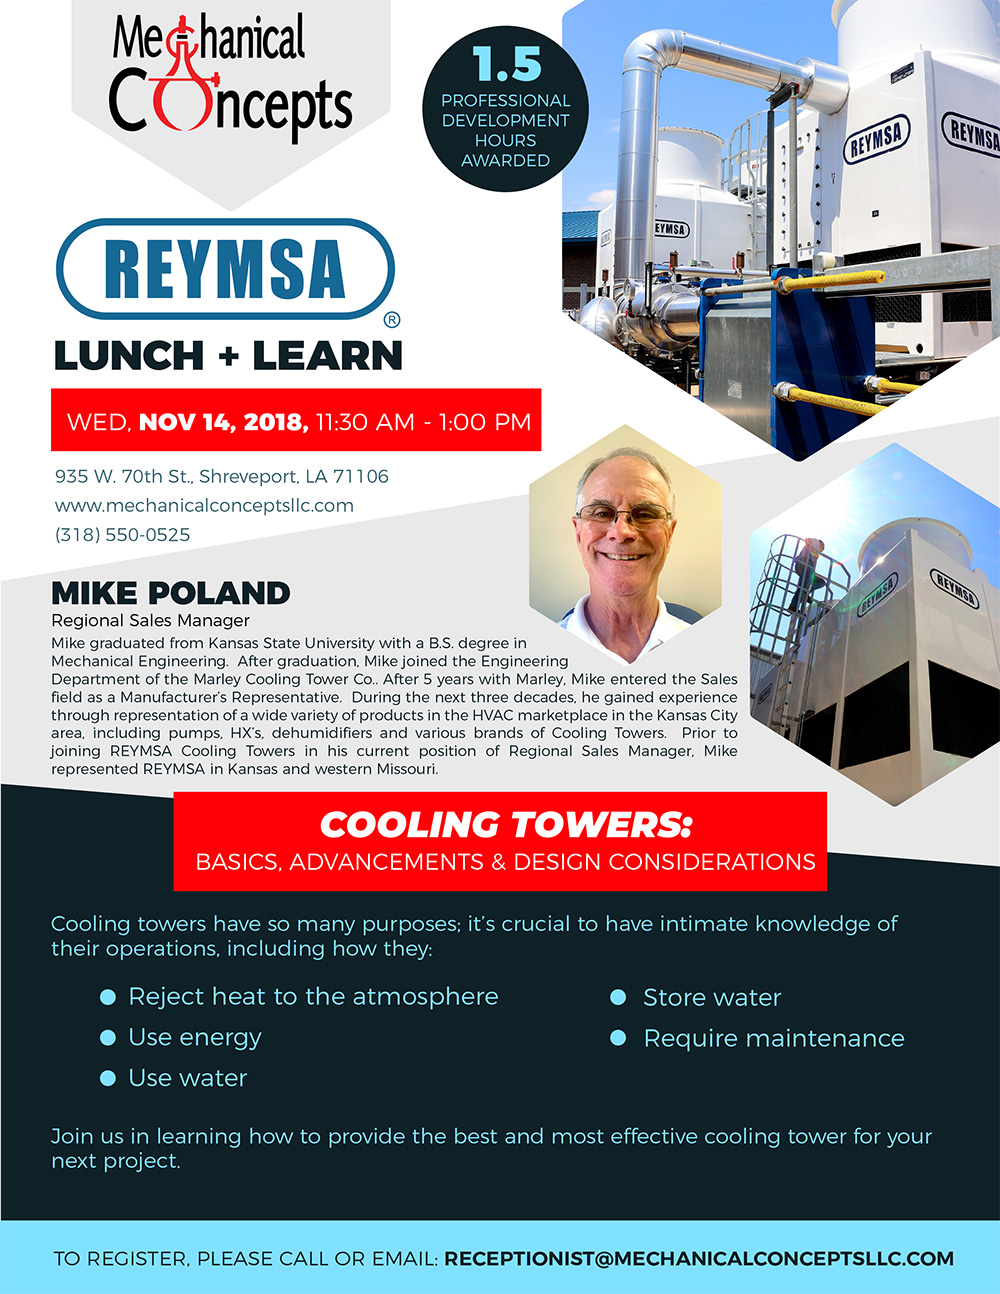 Reymsa Lunch + Learn @ Mechanical Concepts | Shreveport | Louisiana | United States